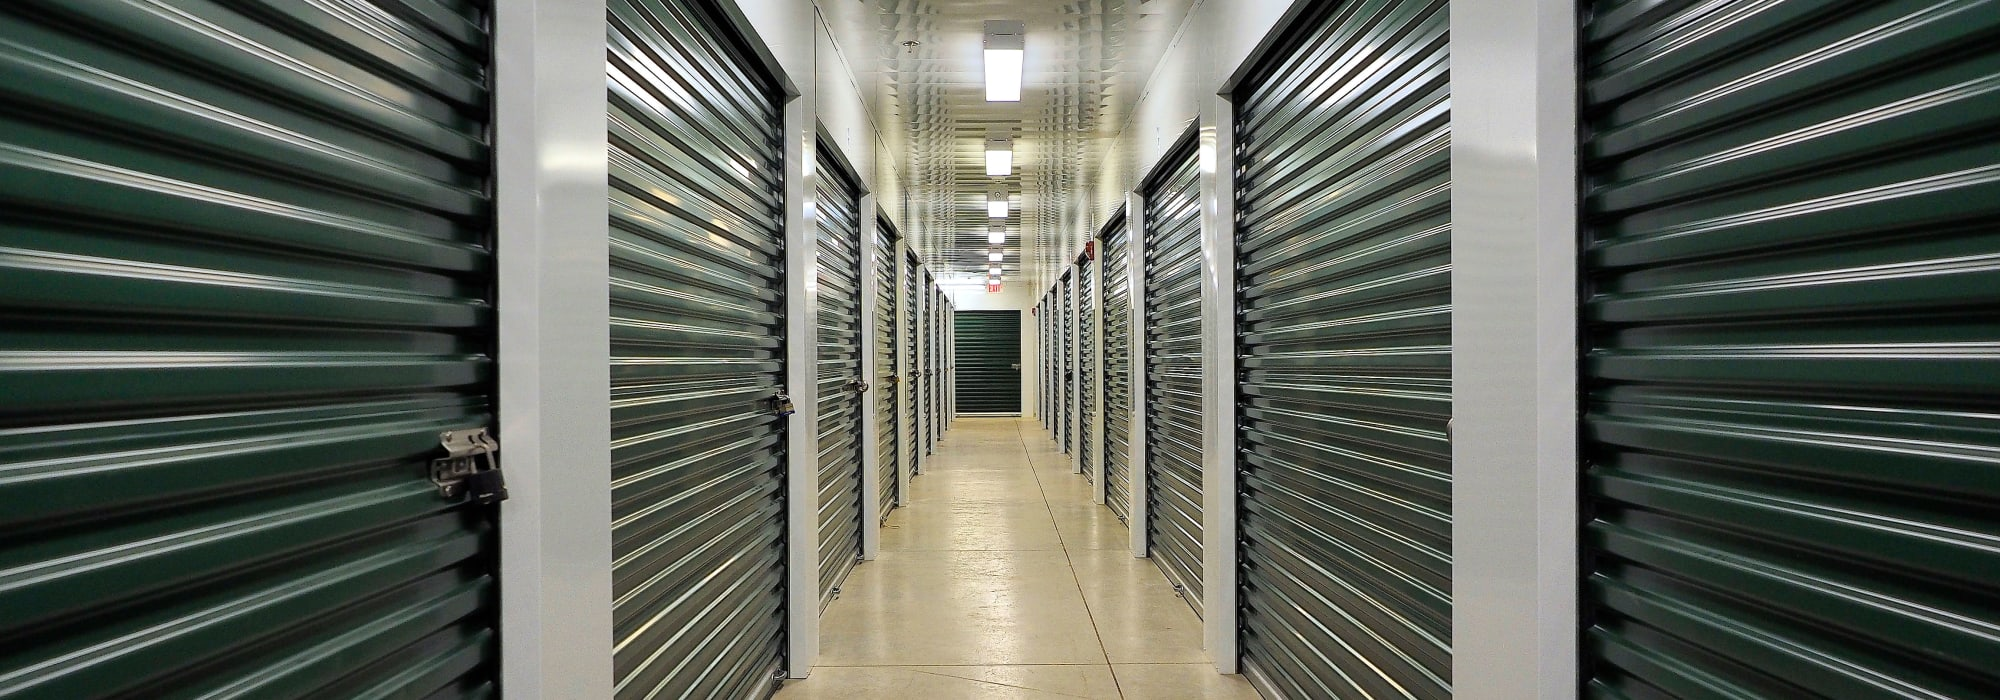 Apple Self Storage - Collingwood in Collingwood, Ontario, interior units with green doors